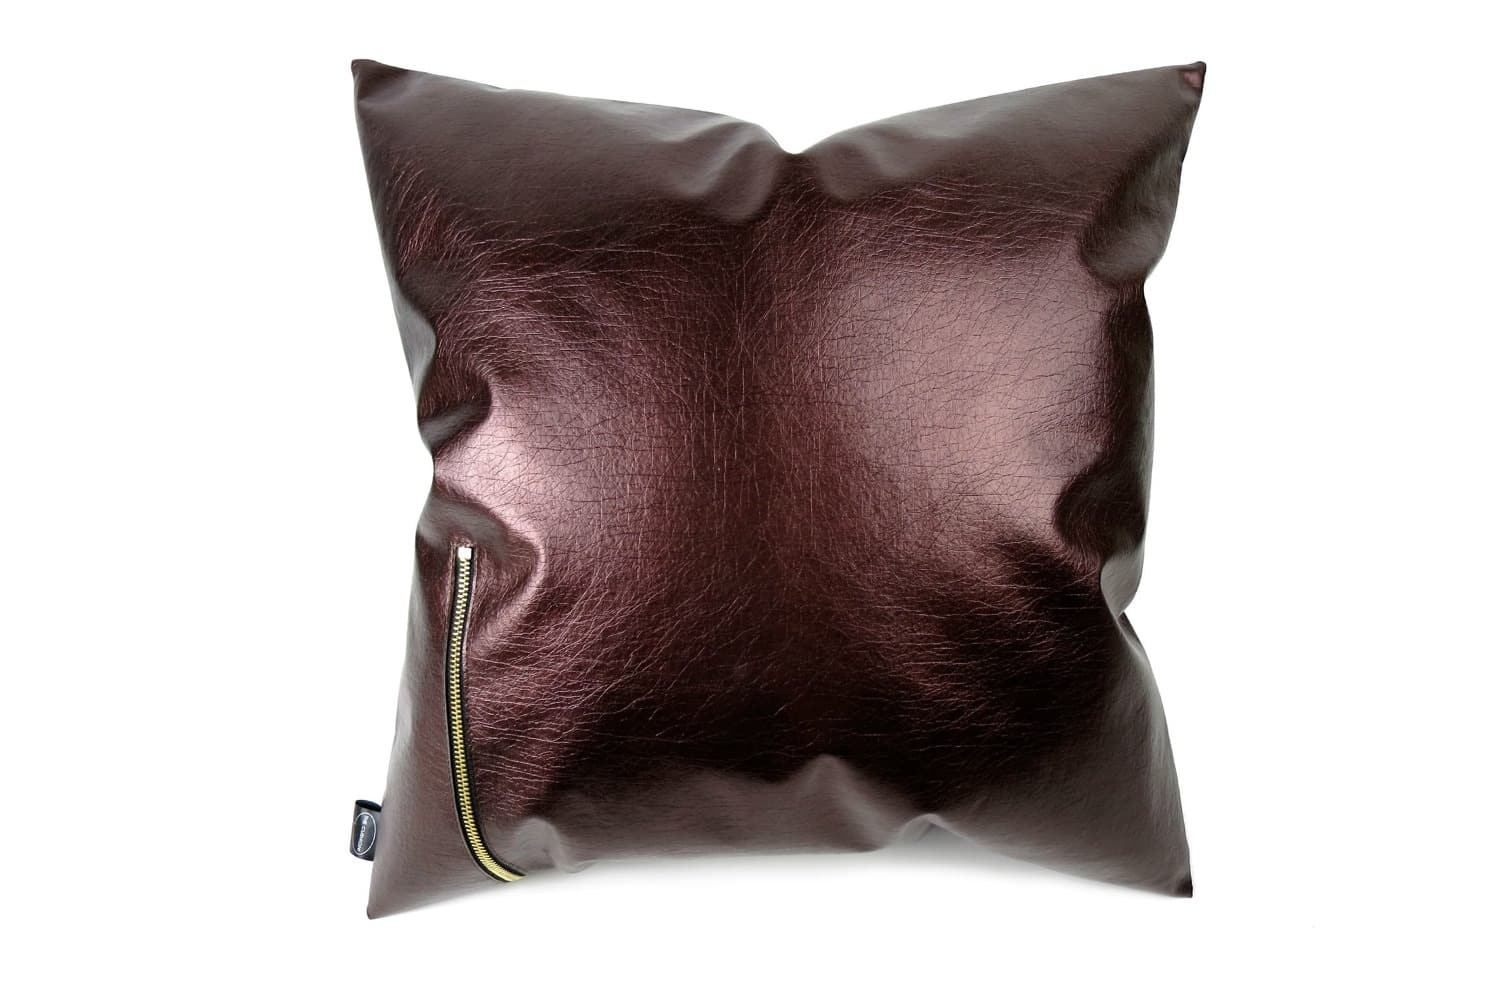 leather-wine-45